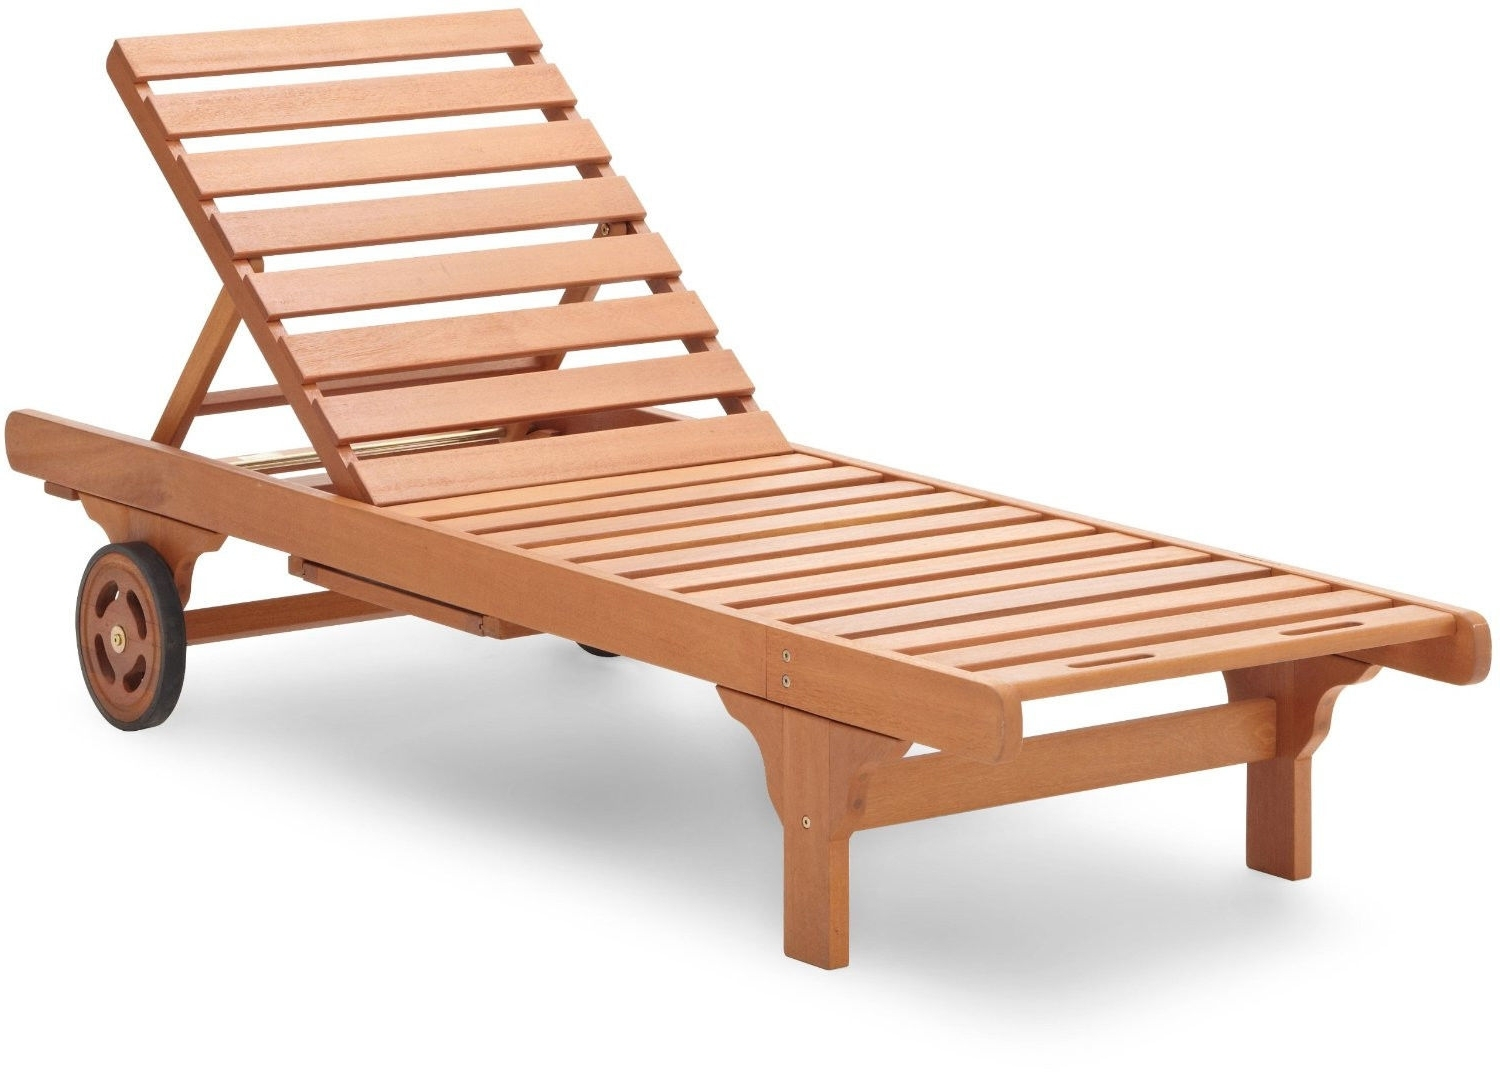 Most Current Wooden Chaise Lounge – Patio Chaise Lounge Ikea, Outdoor Chaise Inside Diy Outdoor Chaise Lounge Chairs (View 7 of 15)